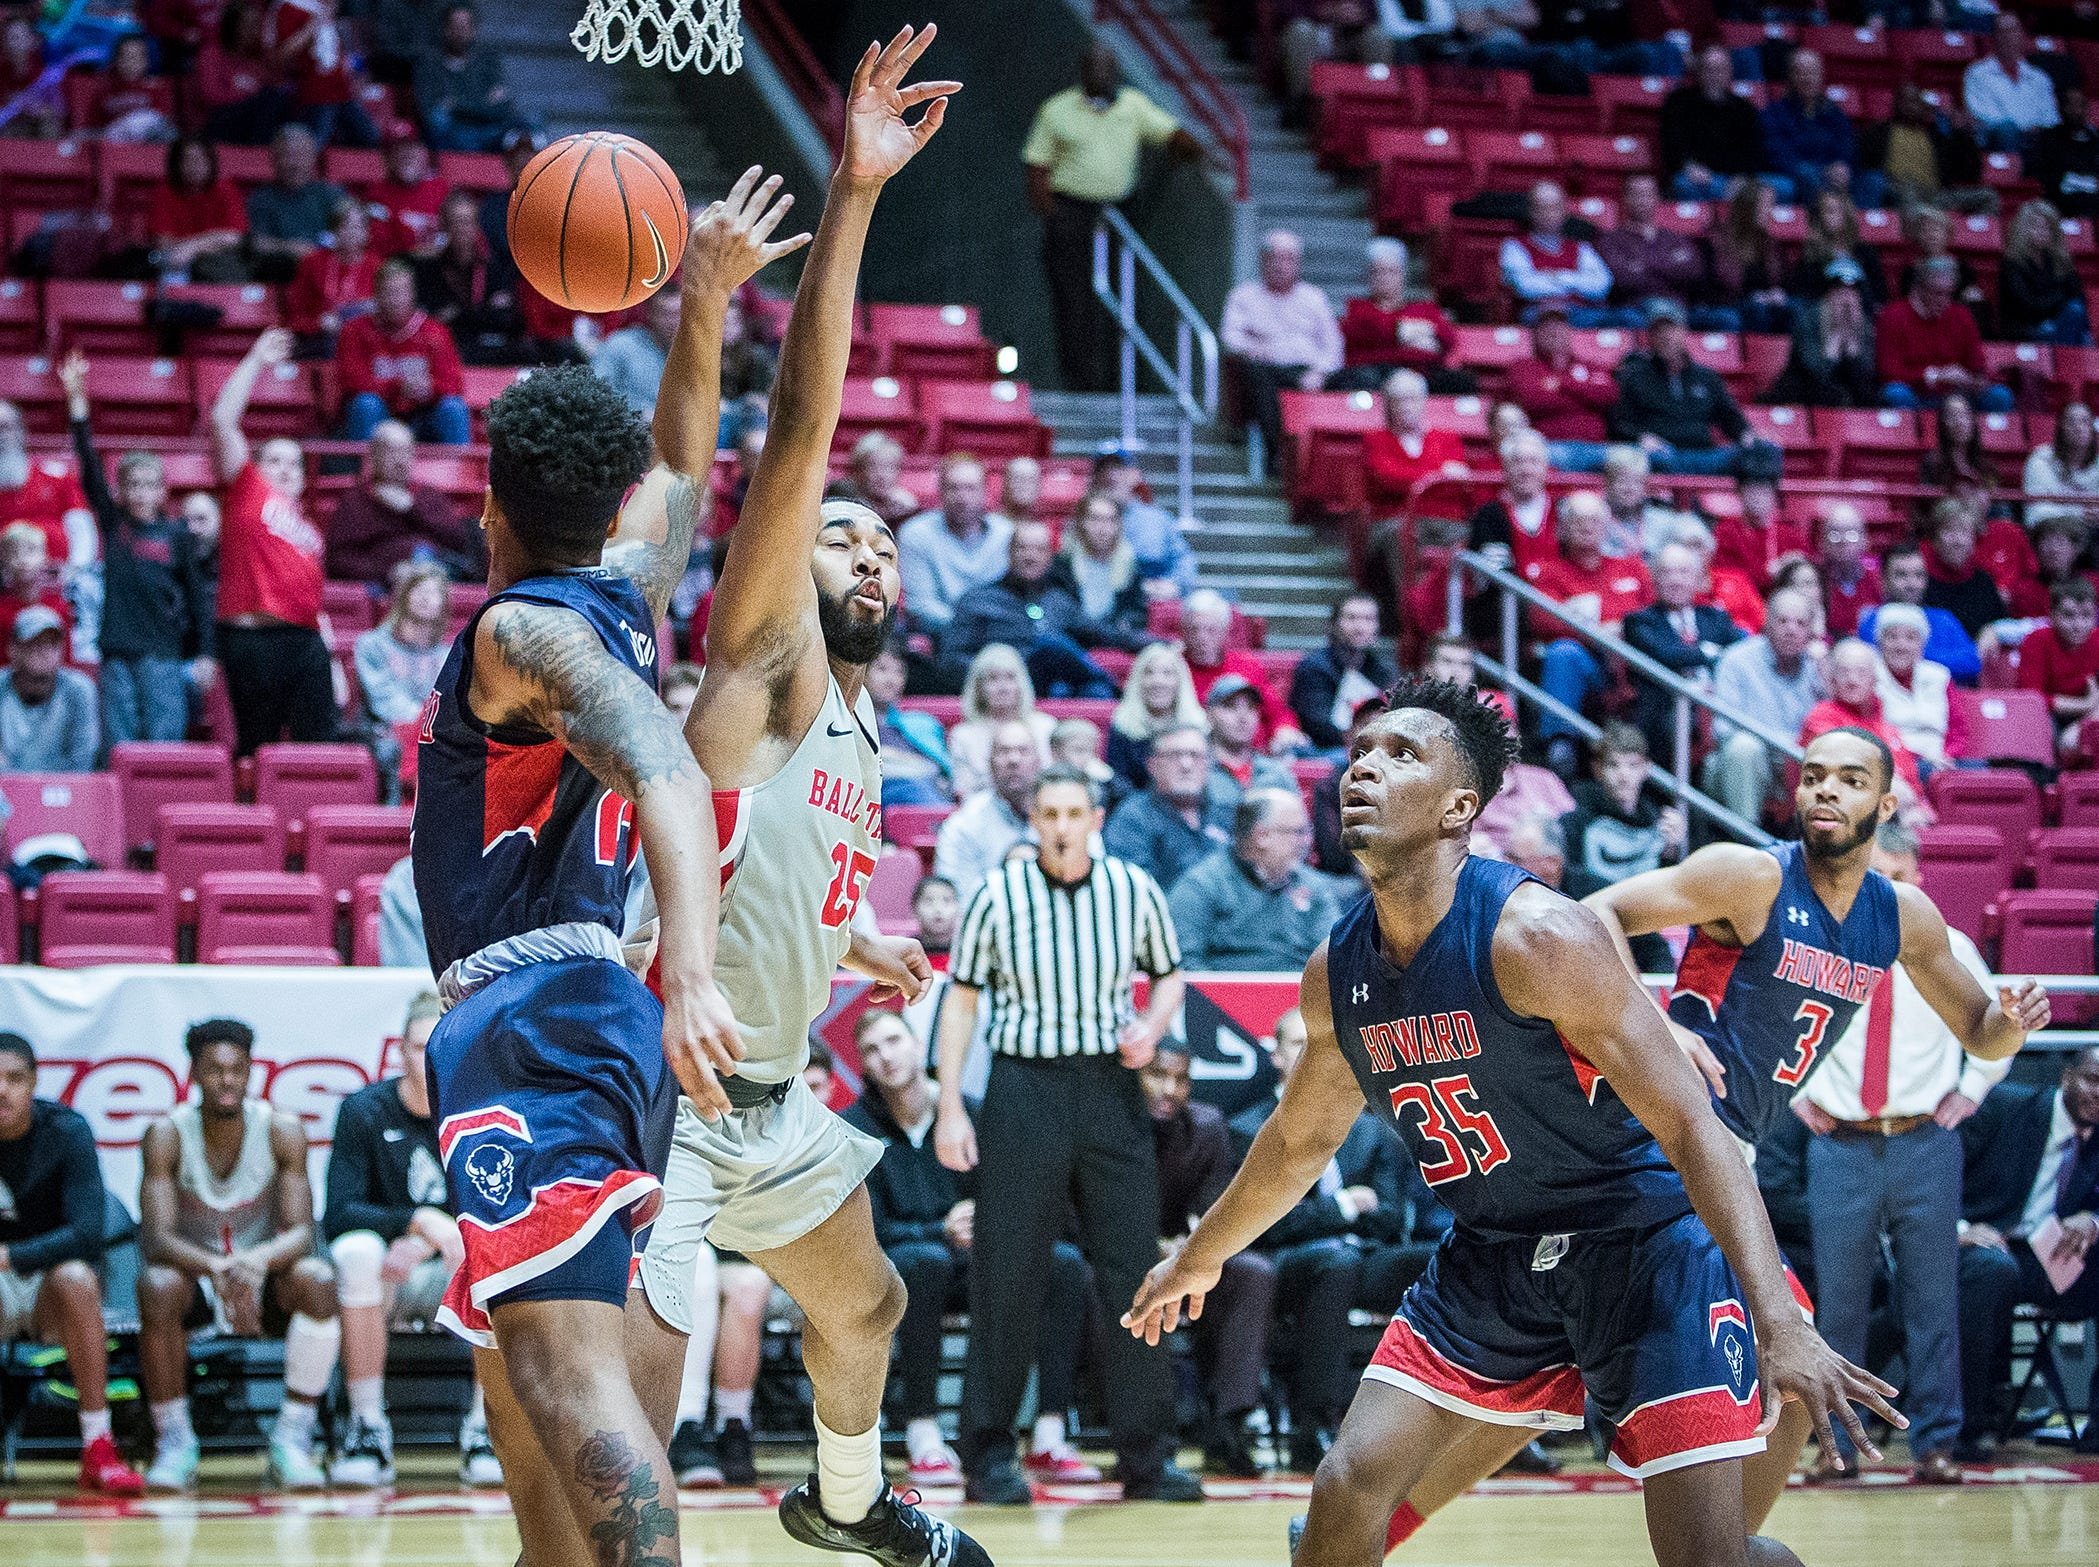 Ball State faces off against Howard during their game at Worthen Arena Thursday, Dec. 20, 2018.